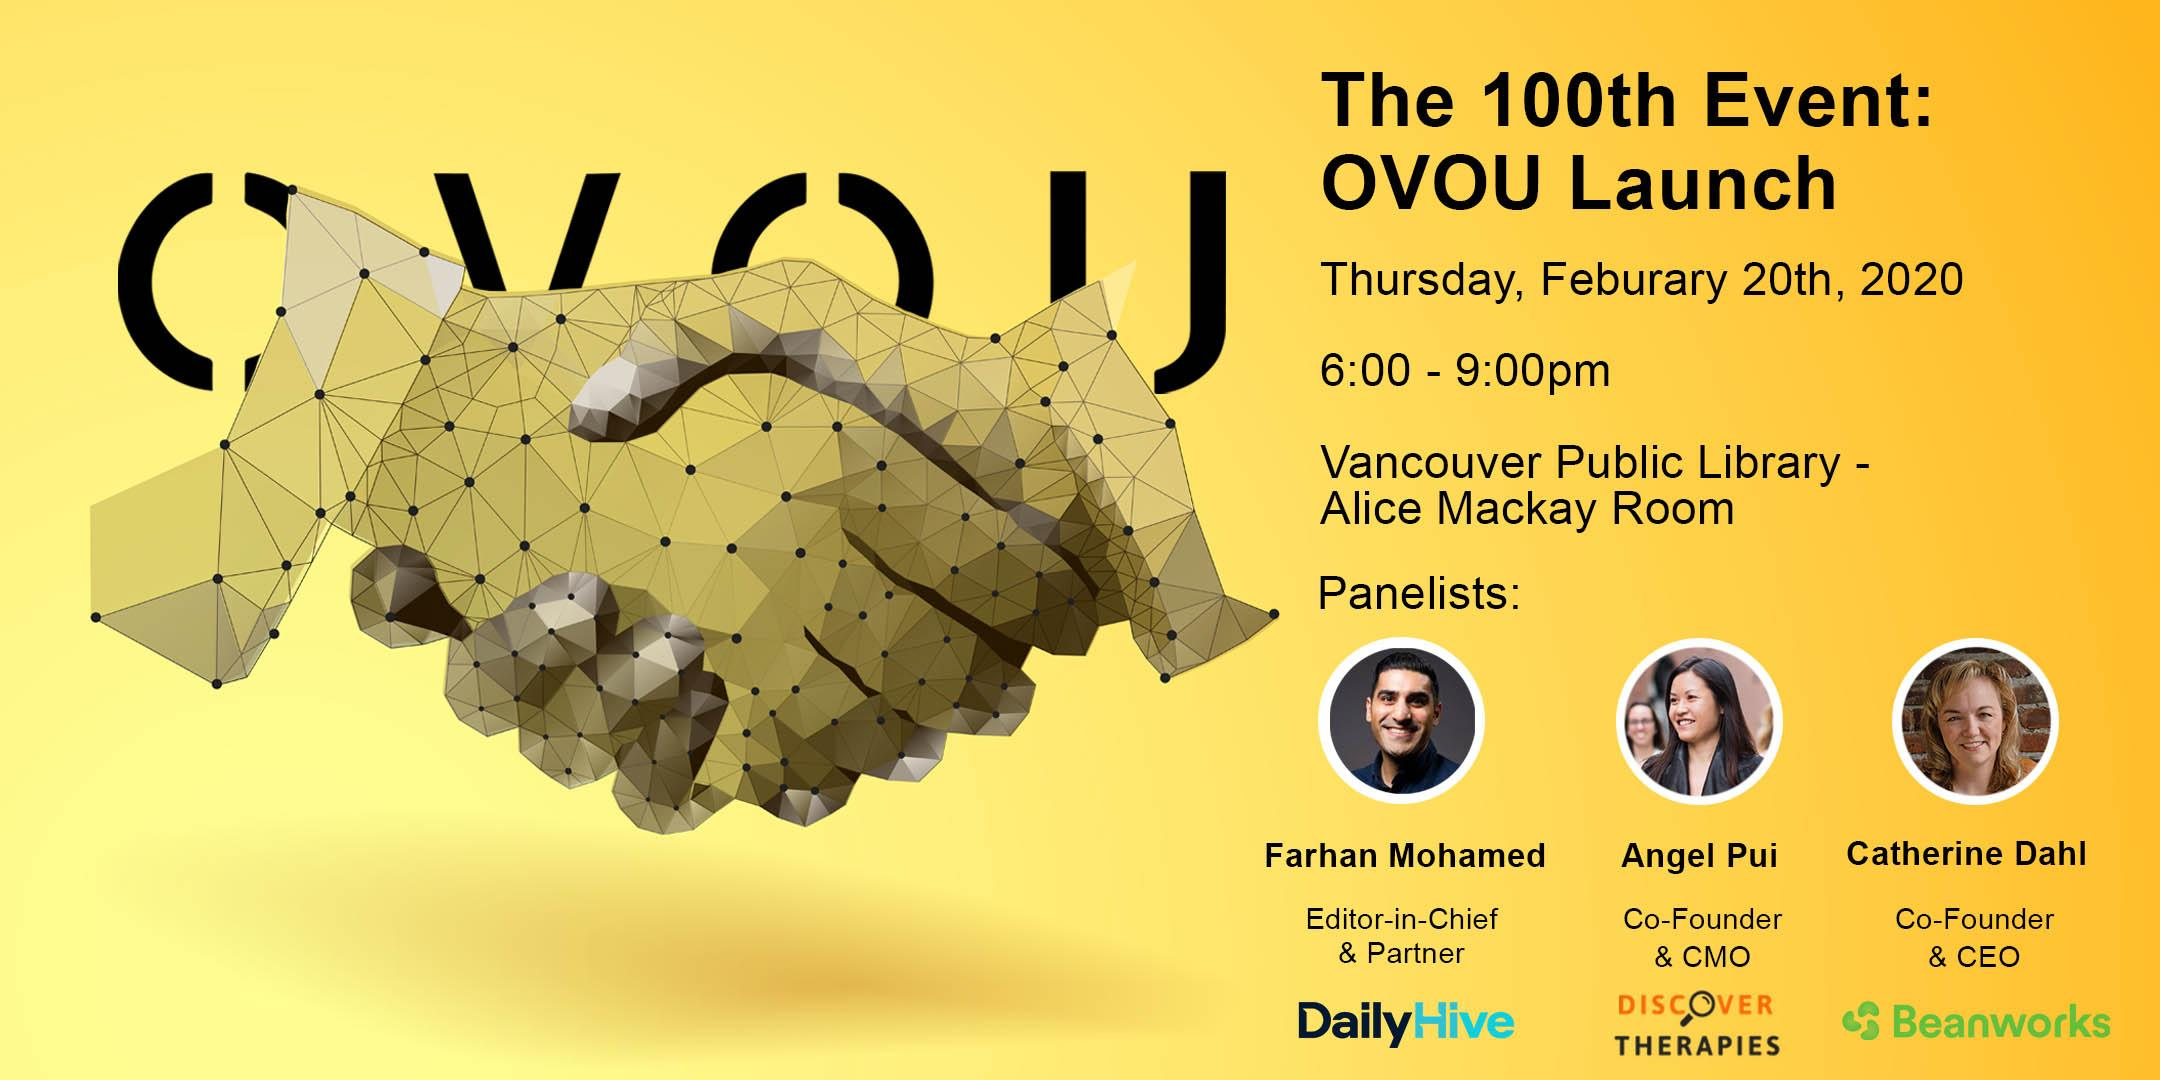 The 100th Event: OVOU Launch